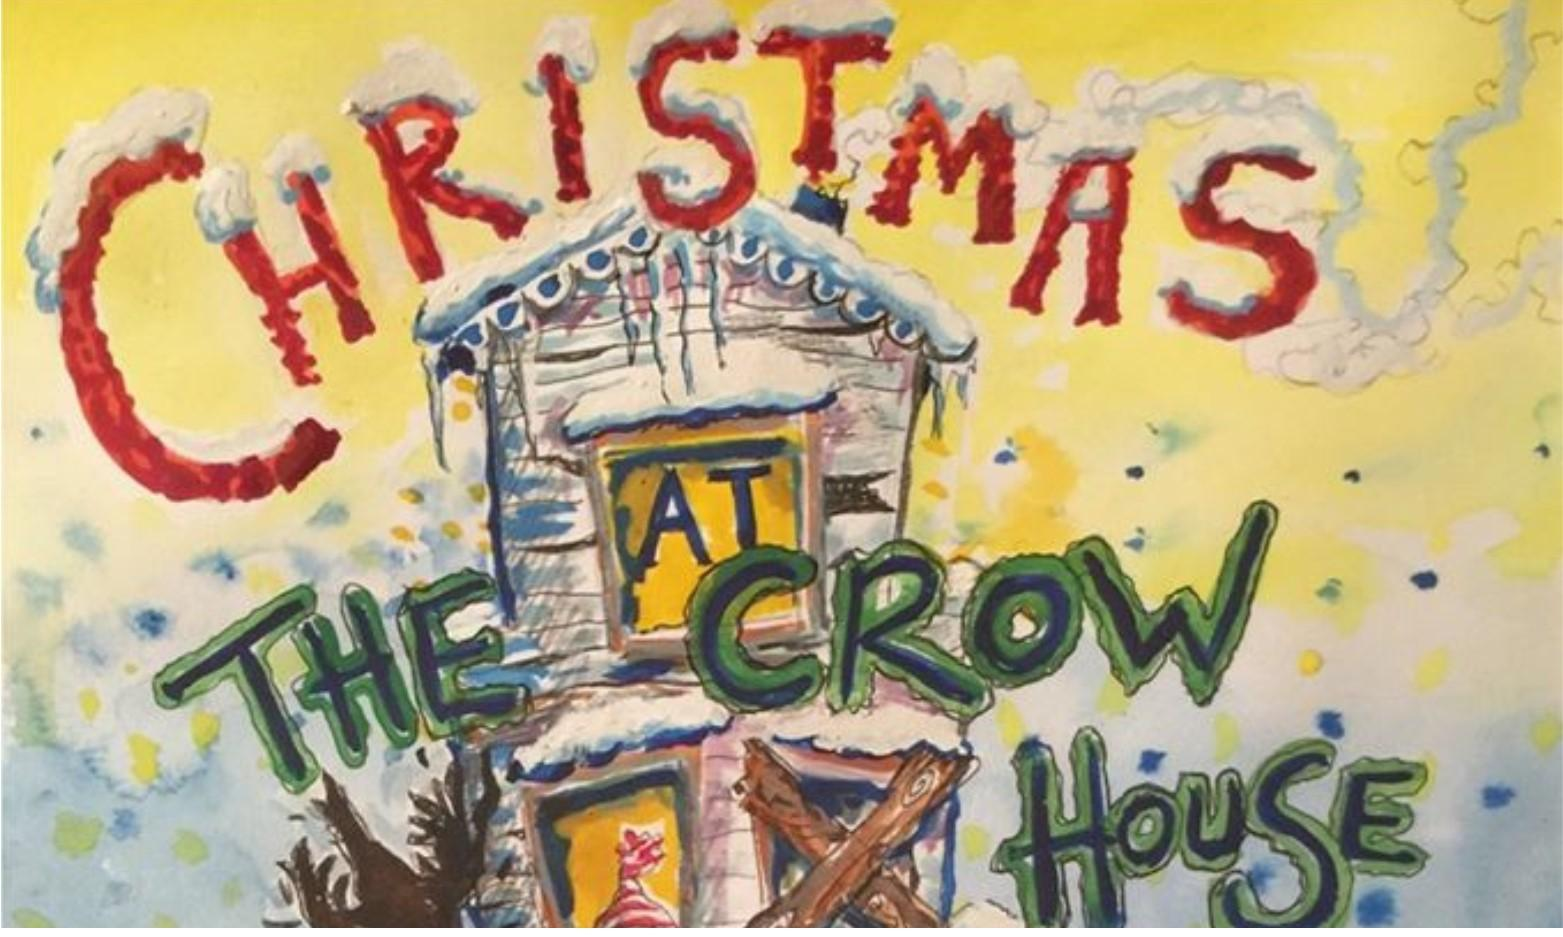 Christmas at The Crow House